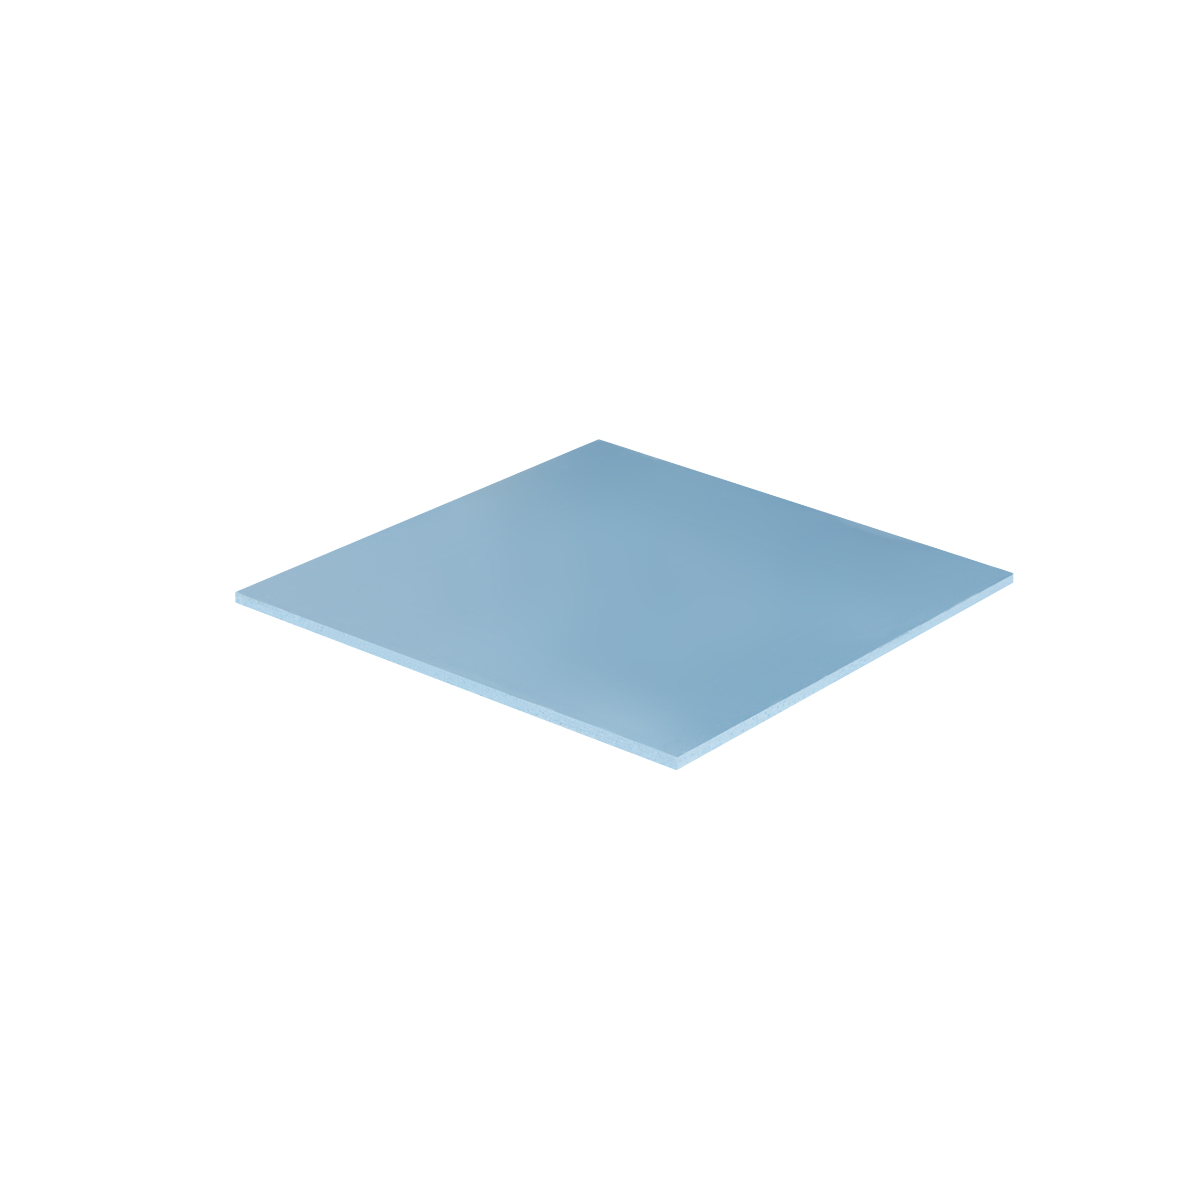 ARCTIC Thermal Pad 50 x 50 mm (1.0 mm) - High Performance Thermal Pad